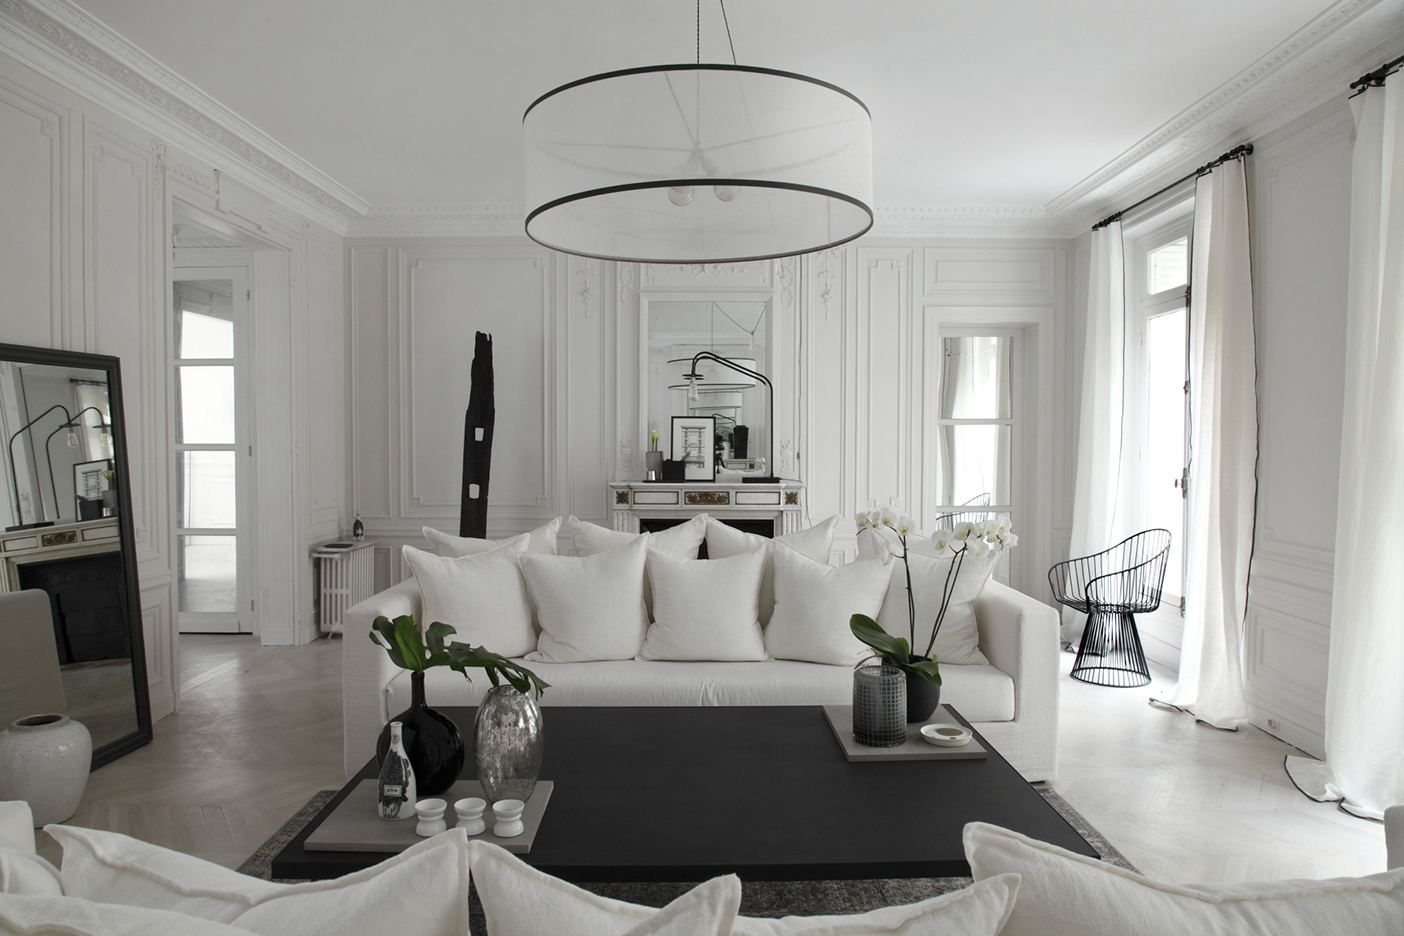 Arredare la casa in total white mamma al top for Casa moderna total white